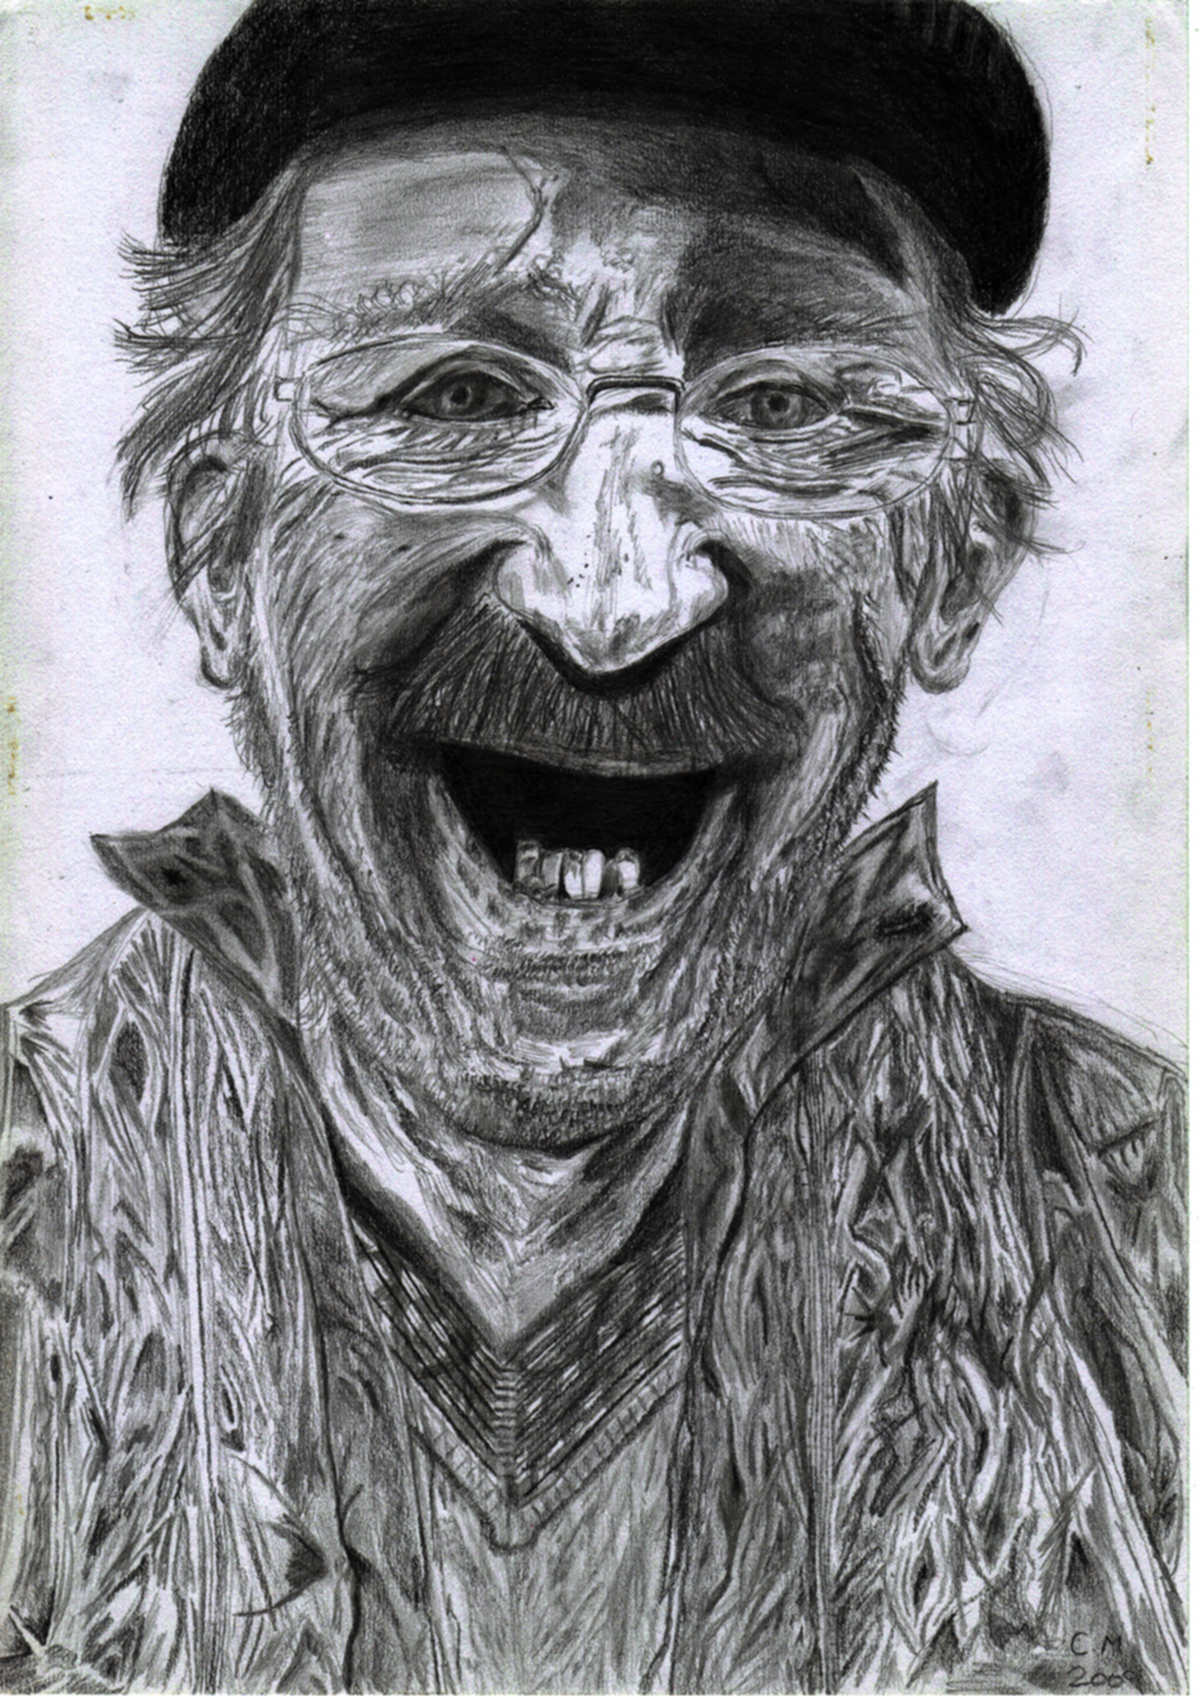 Pencil drawing of old dude